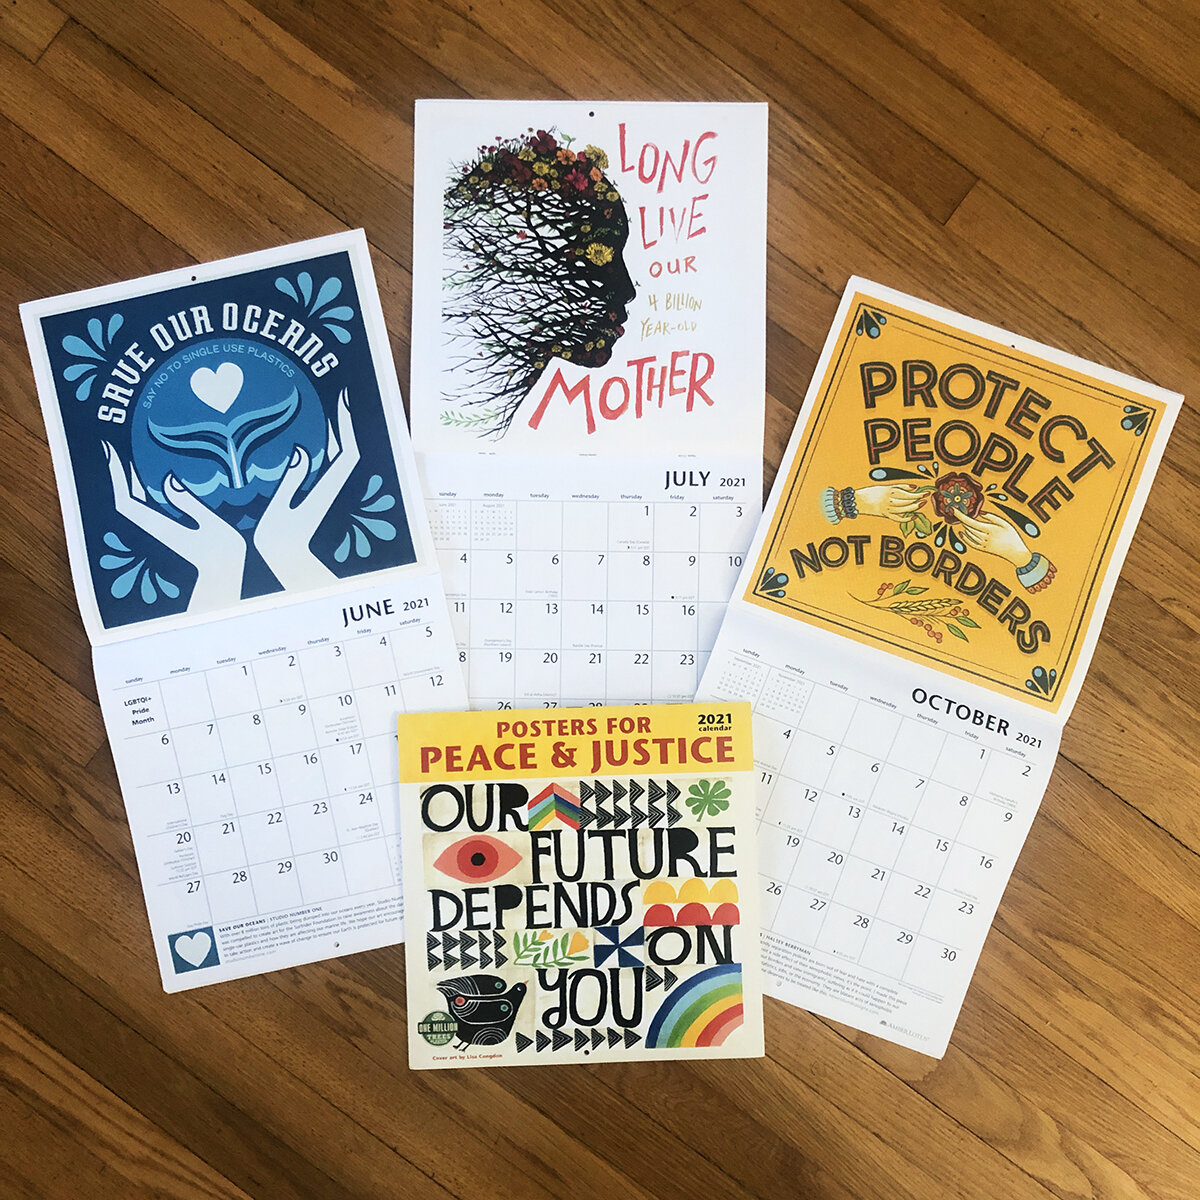 snos art included in 2021 posters for peace and justice calendar